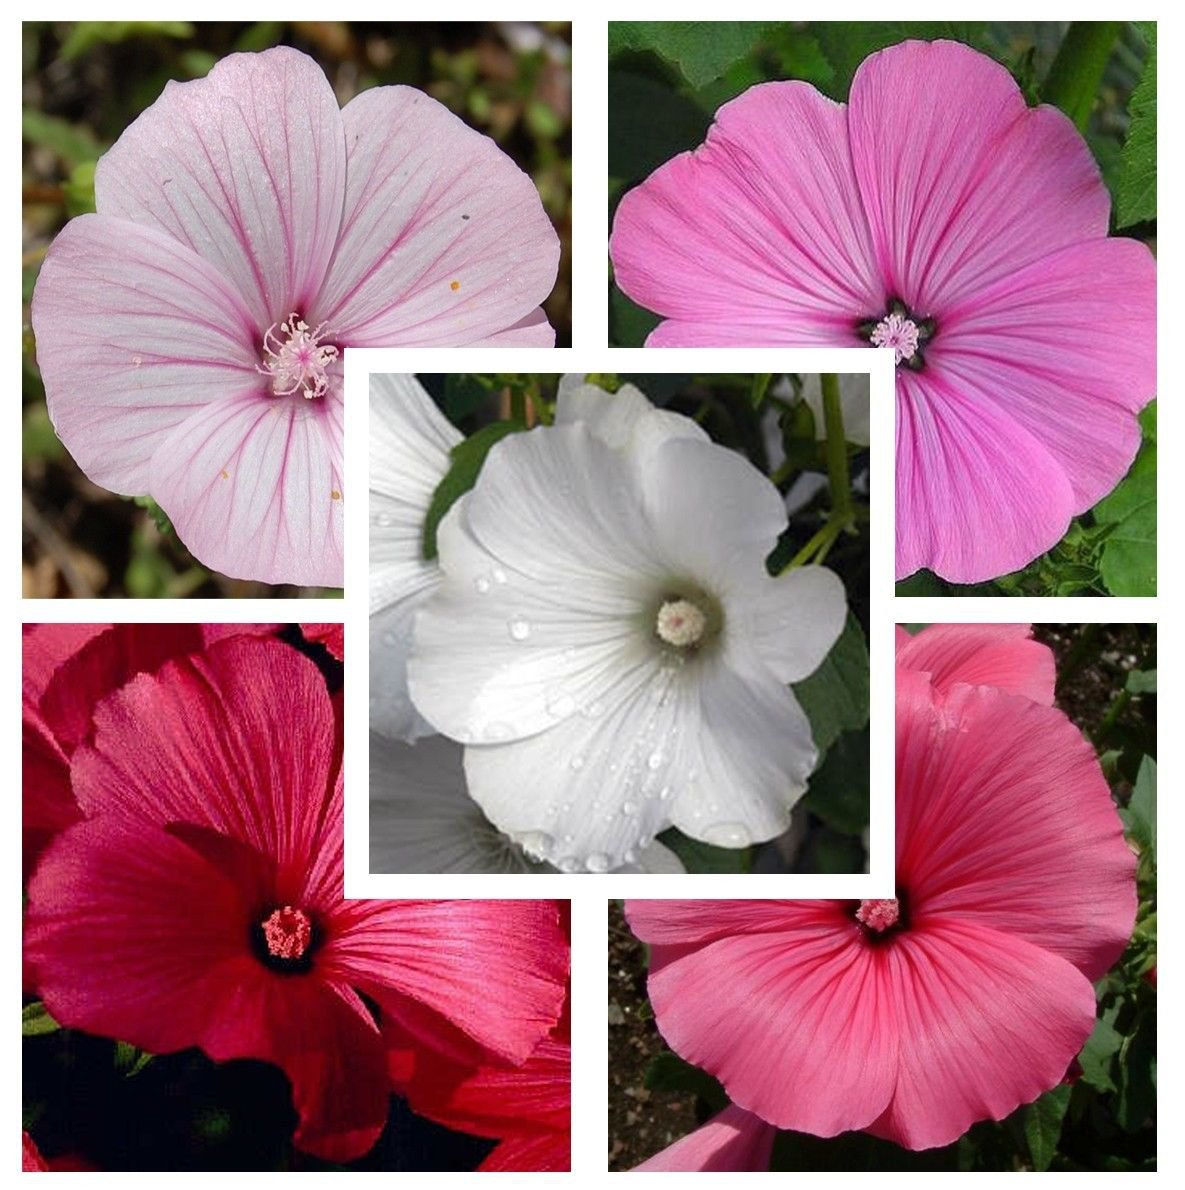 Rose Mallow Lavatera Trimestris Mix 250 seeds *SHIPPING FROM US* CombSH D71